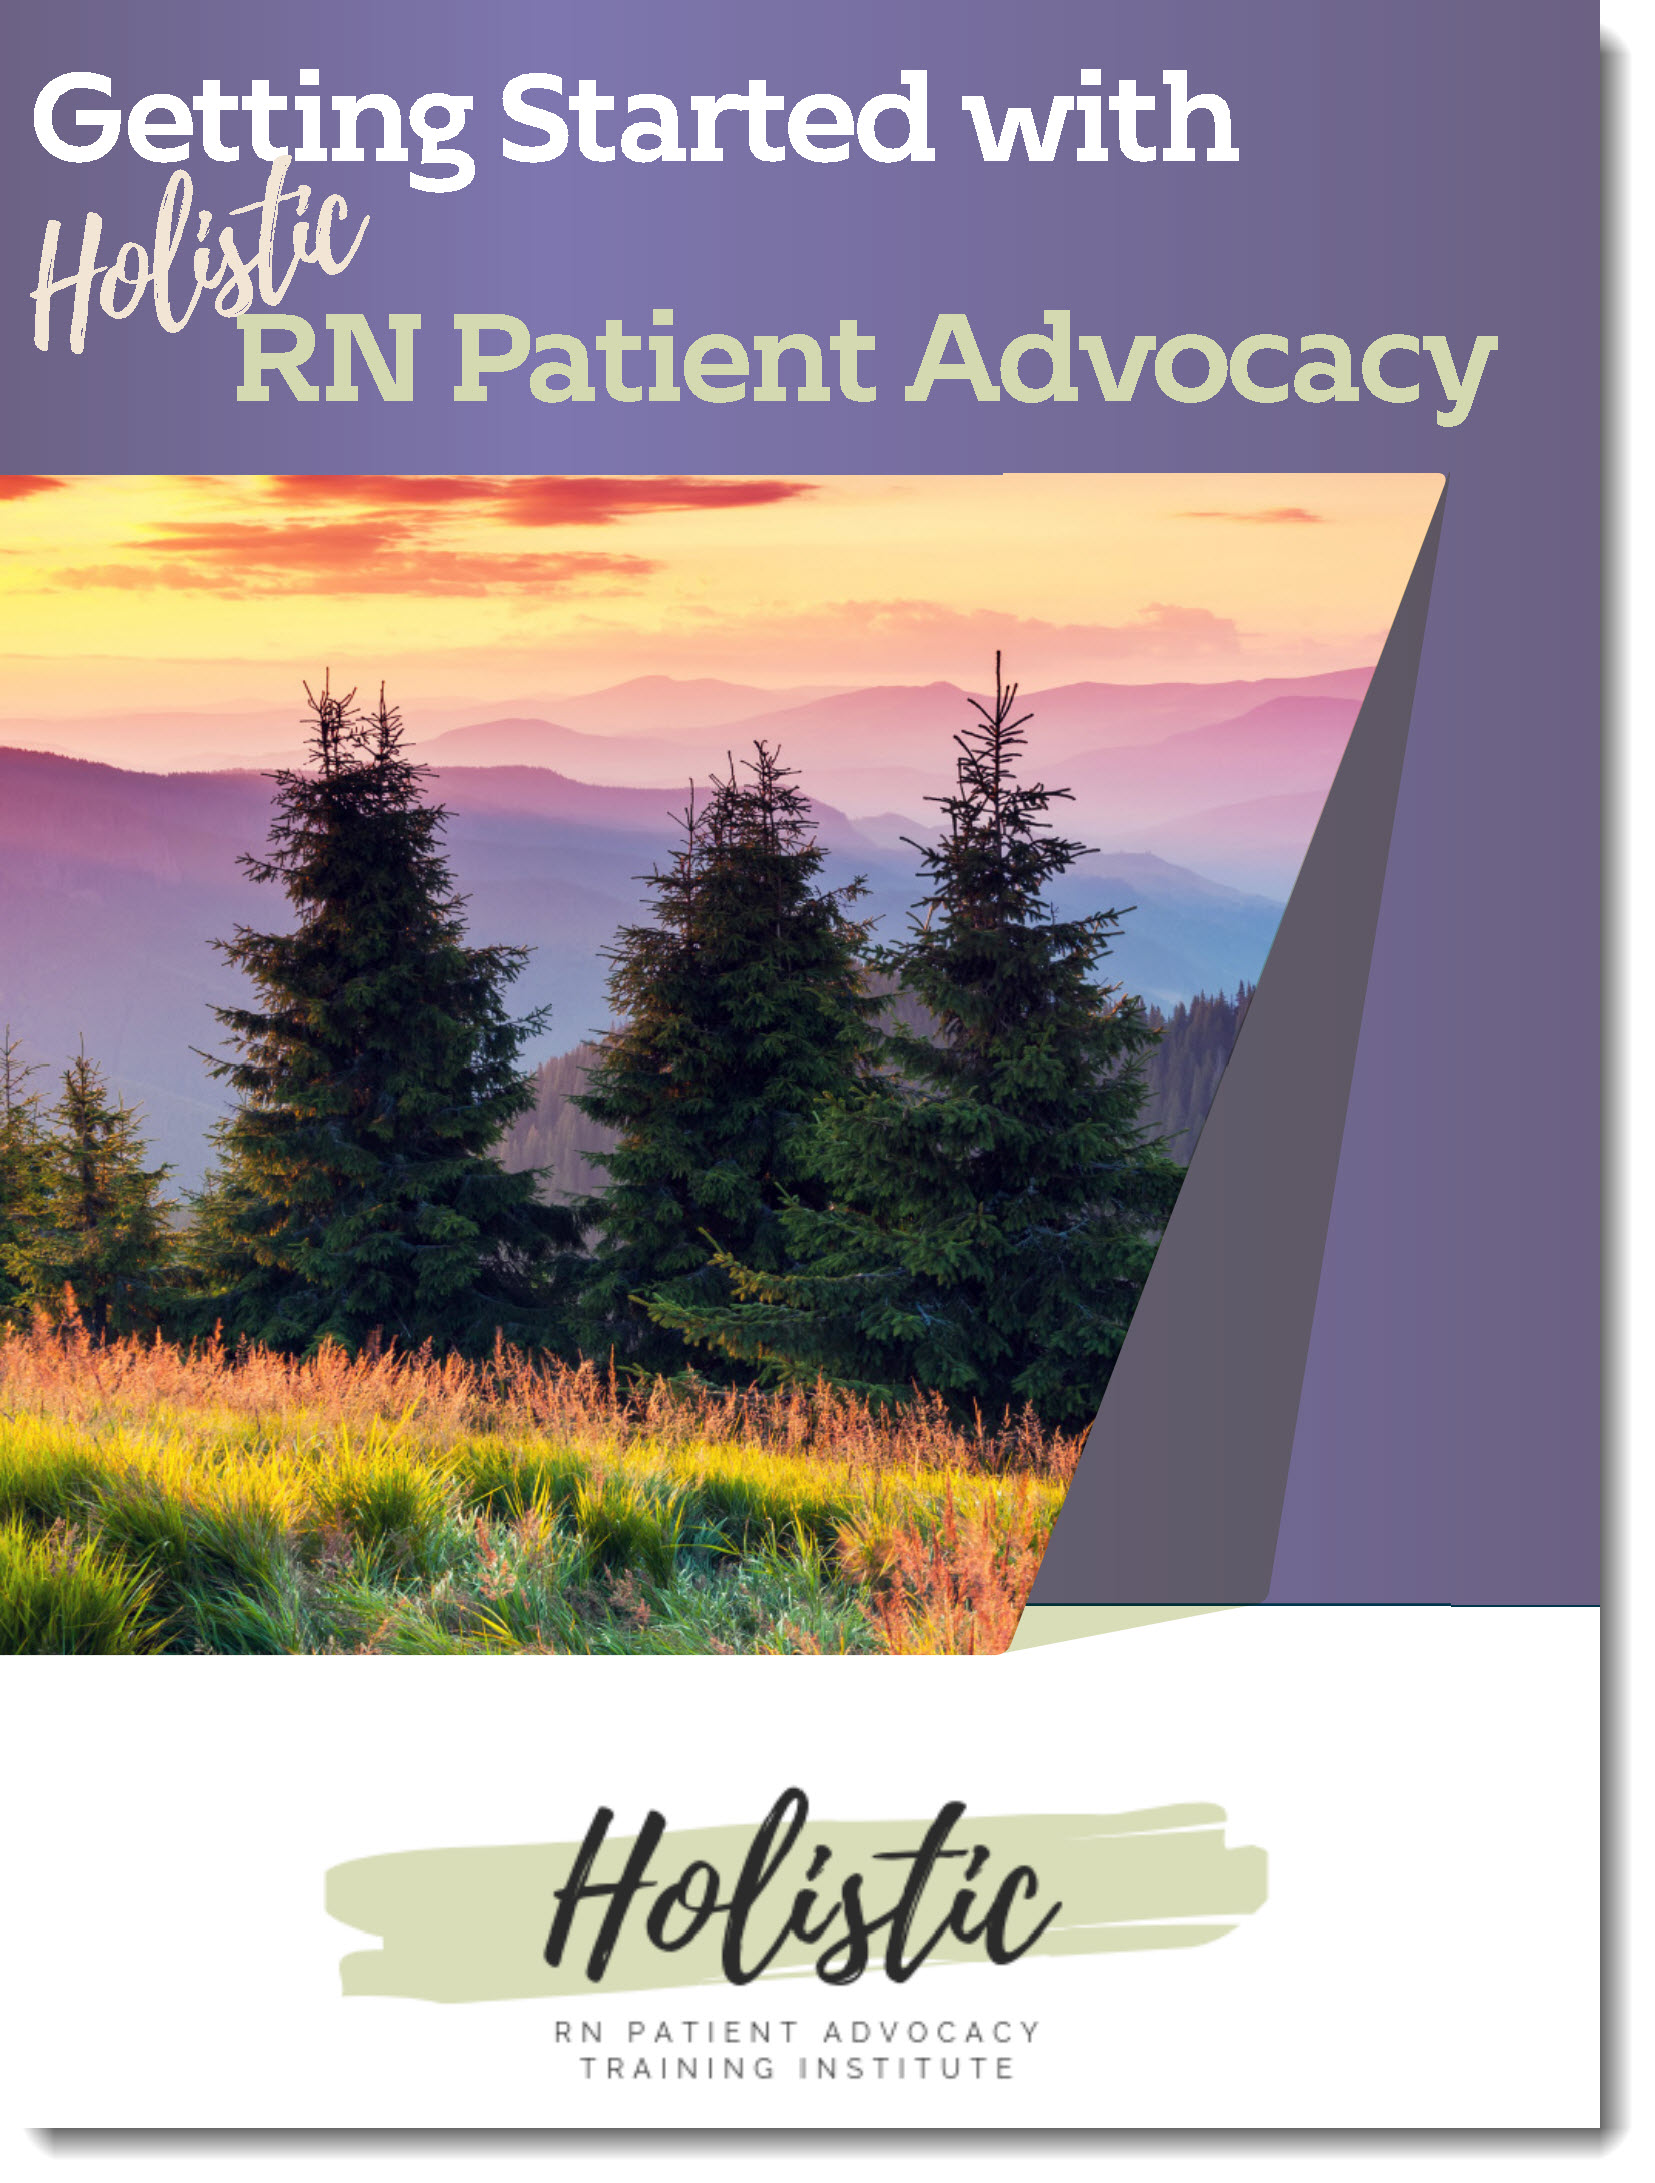 etting Started in Holistic RN Patient Advocacy Training